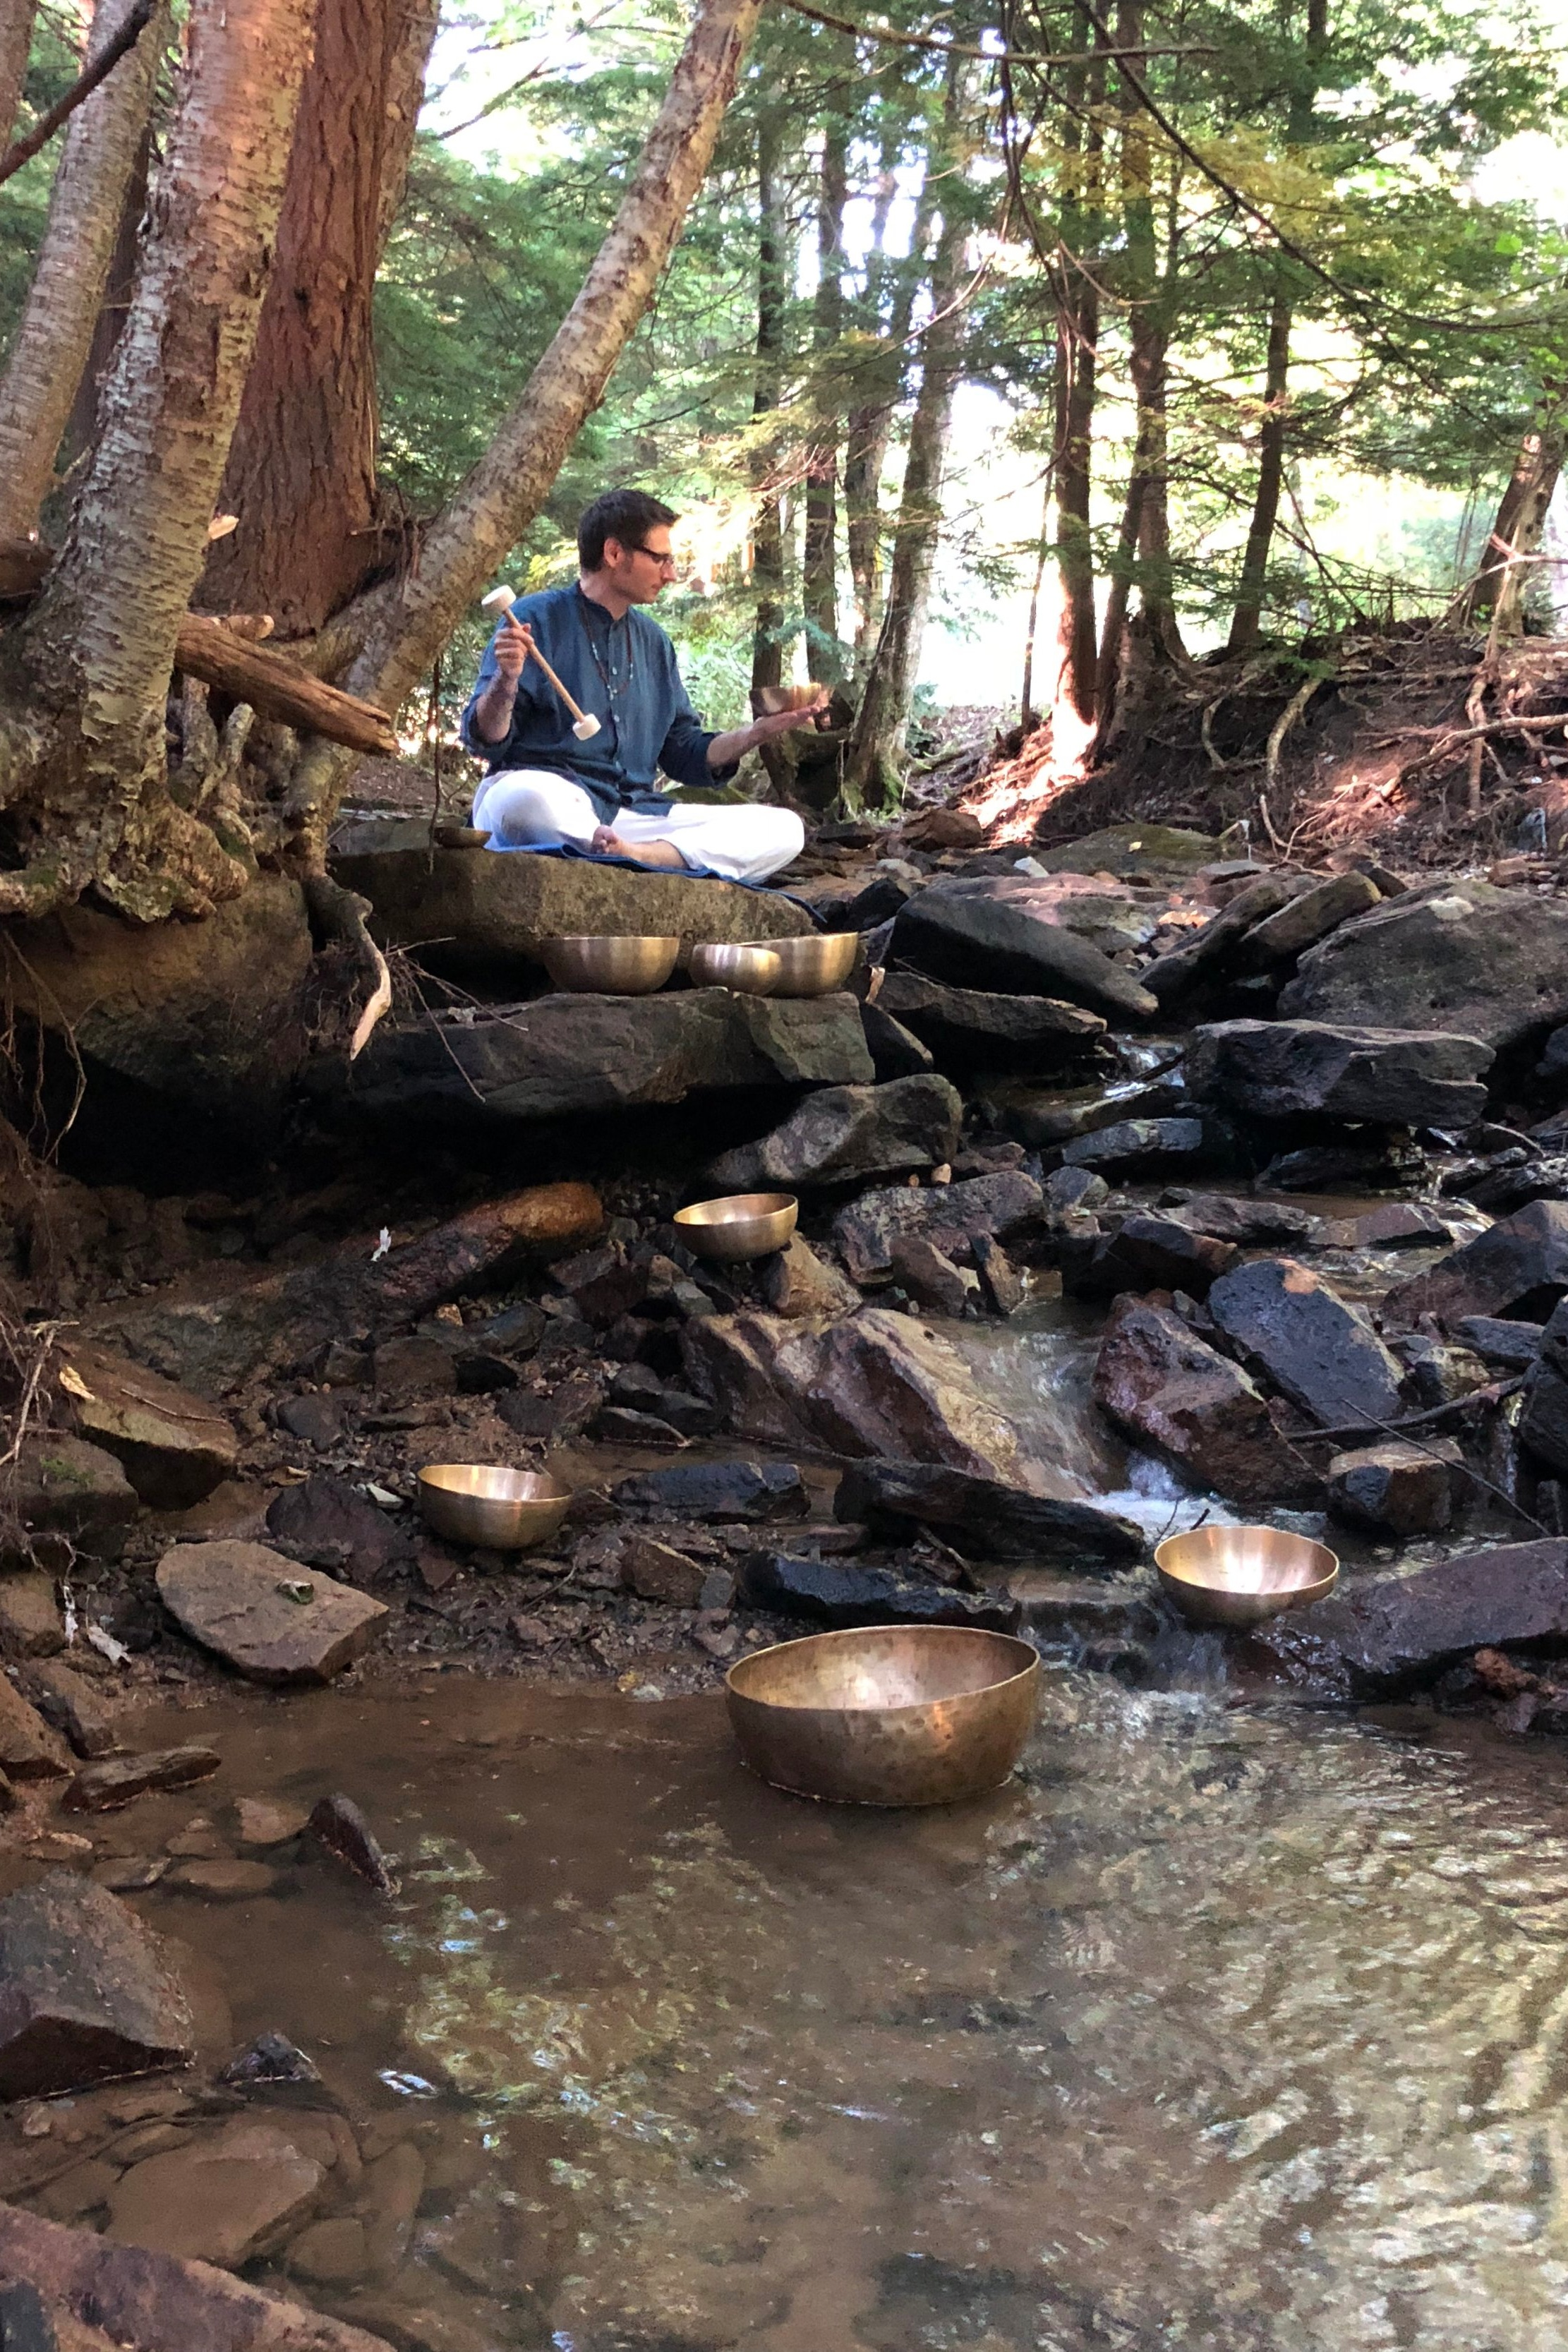 Western Pennsylvania forrest with singing bowls.